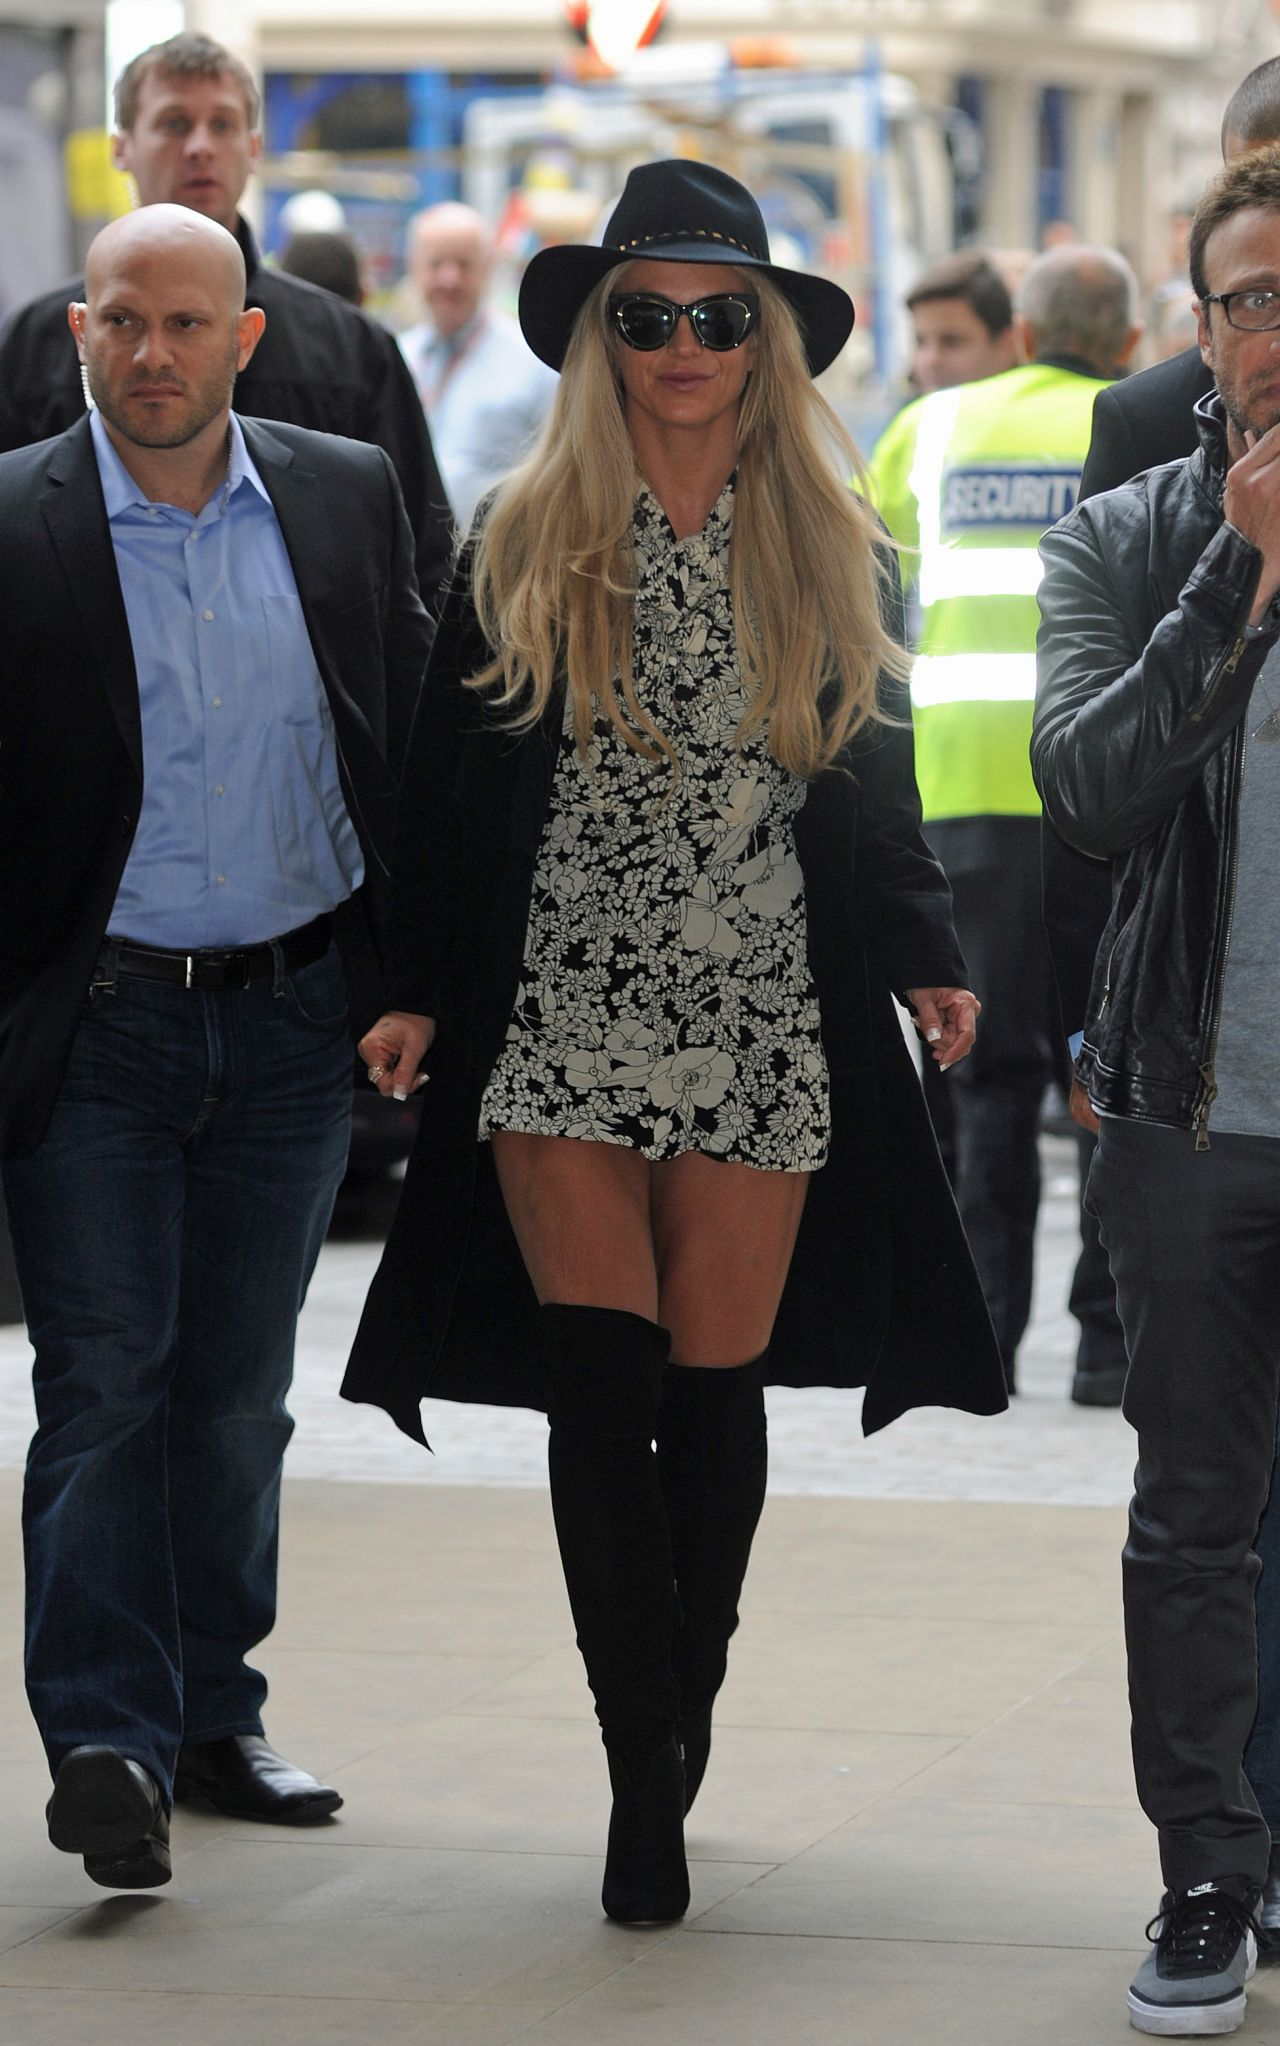 britney-spears-at-bbc-radio-1-in-london-